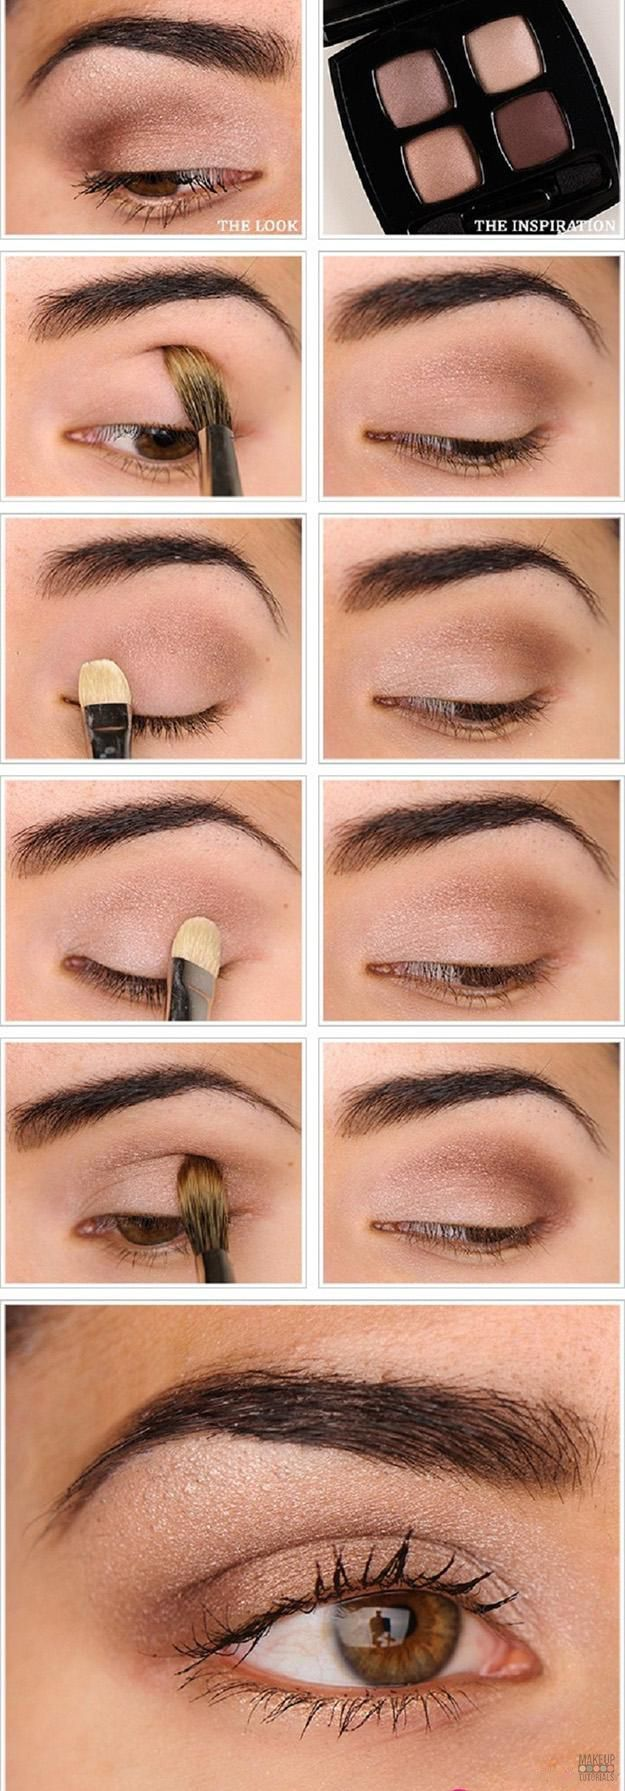 Eyeshadow Tutorial: How To Do Everyday Natural Makeup. DIY simple and quick tutorial. Beauty Tips and Tricks. | Makeup Tutorials http://makeuptutorials.com/everyday-natural-makeup-tutorials/